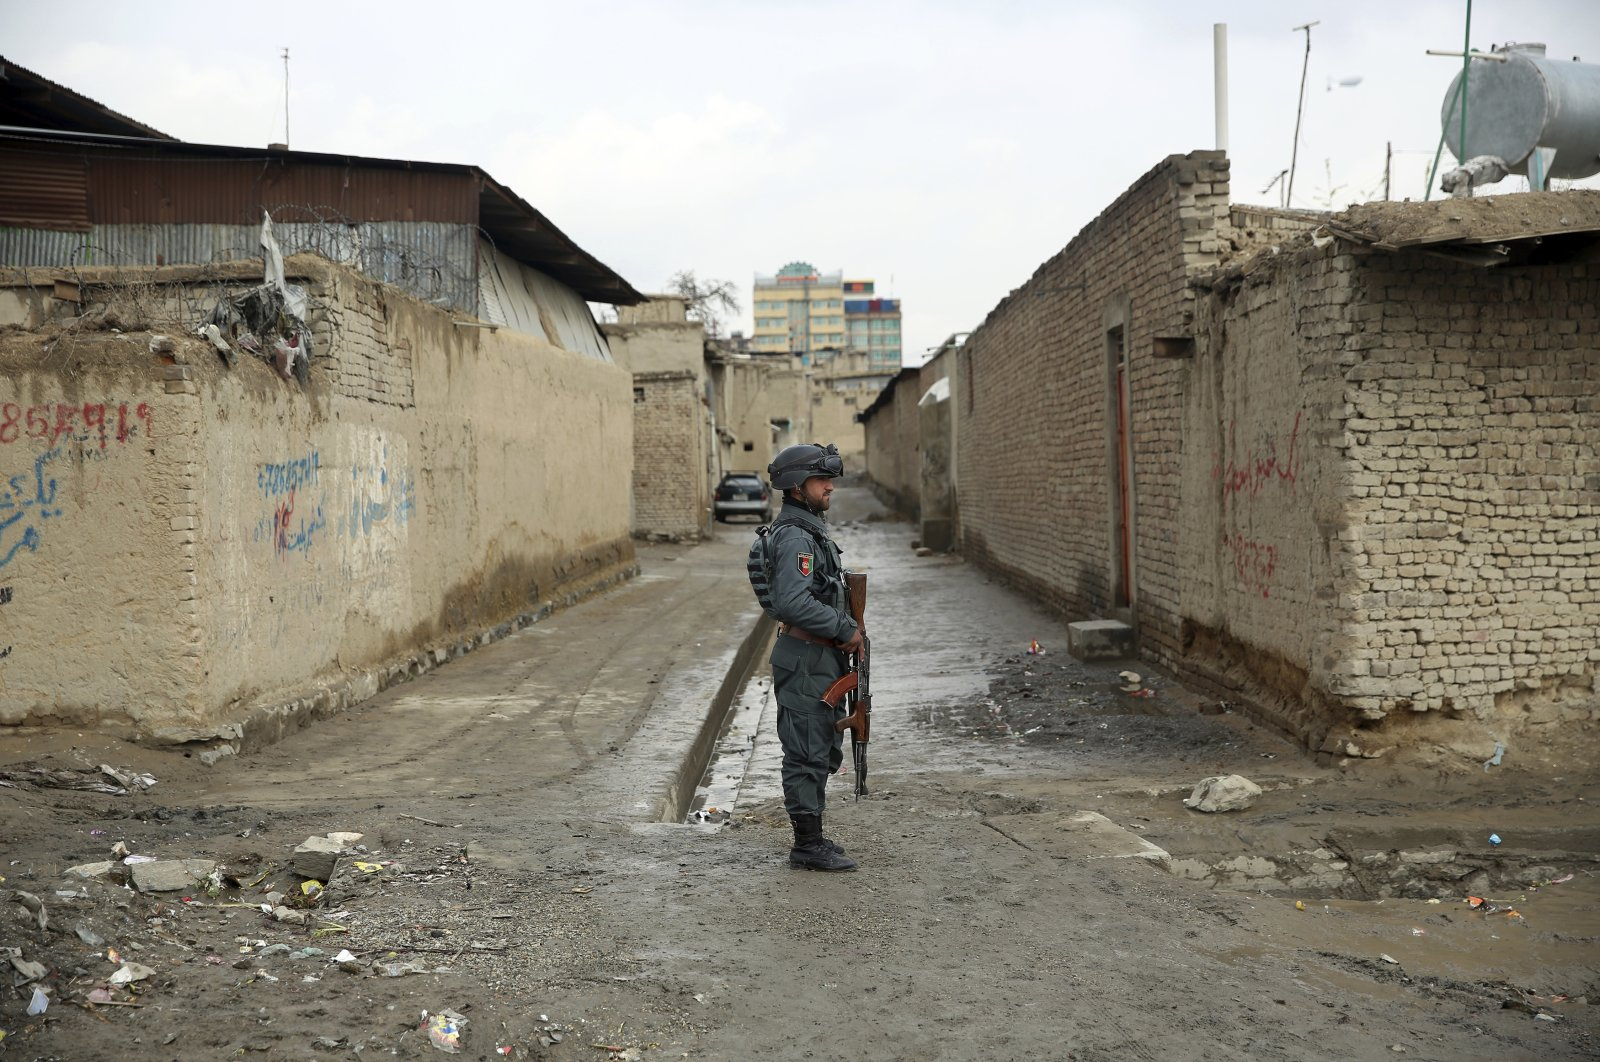 An Afghan security guard stands at the site of an attack in Kabul, Wednesday, March 25, 2020. (AP Photo)